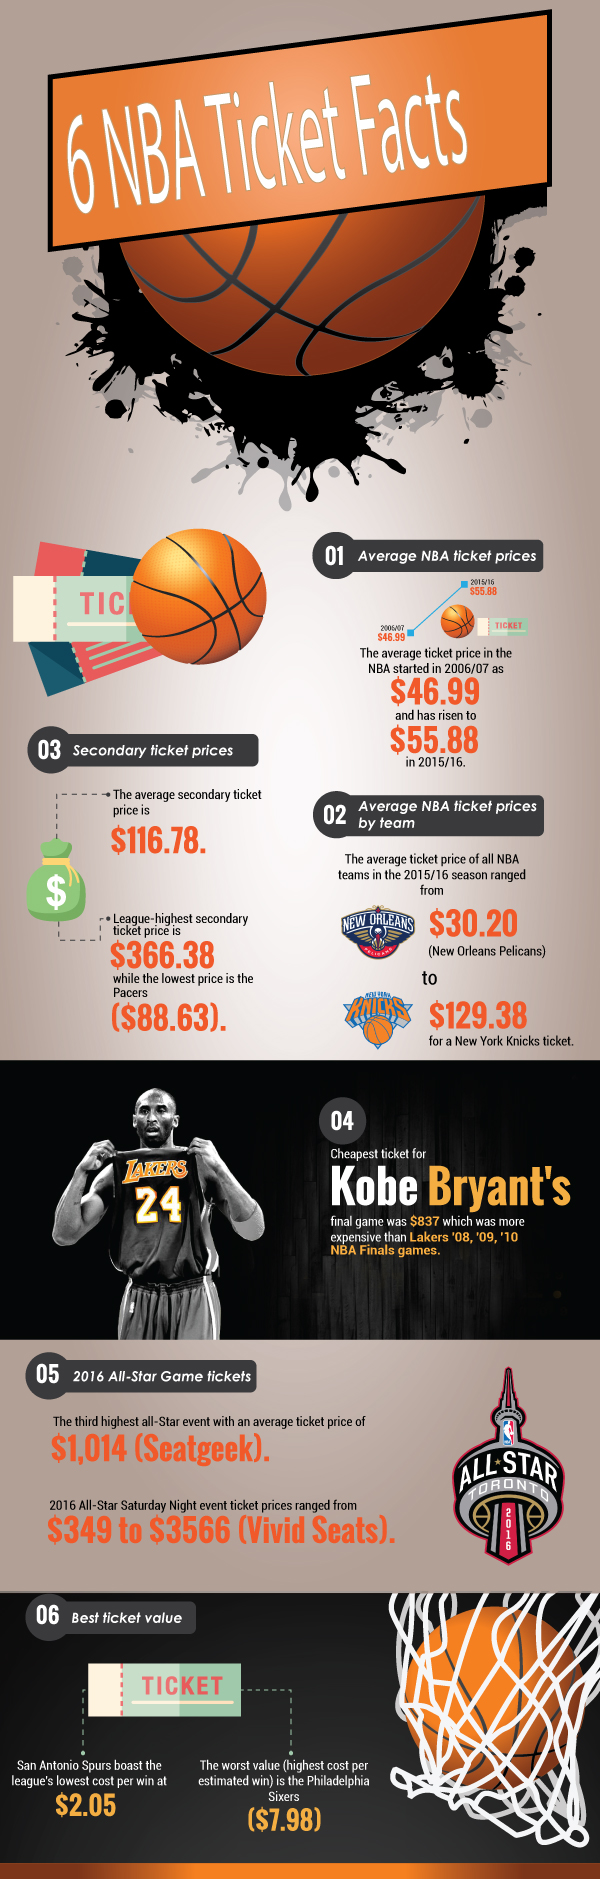 6-nba-ticket-facts-infographic-plaza